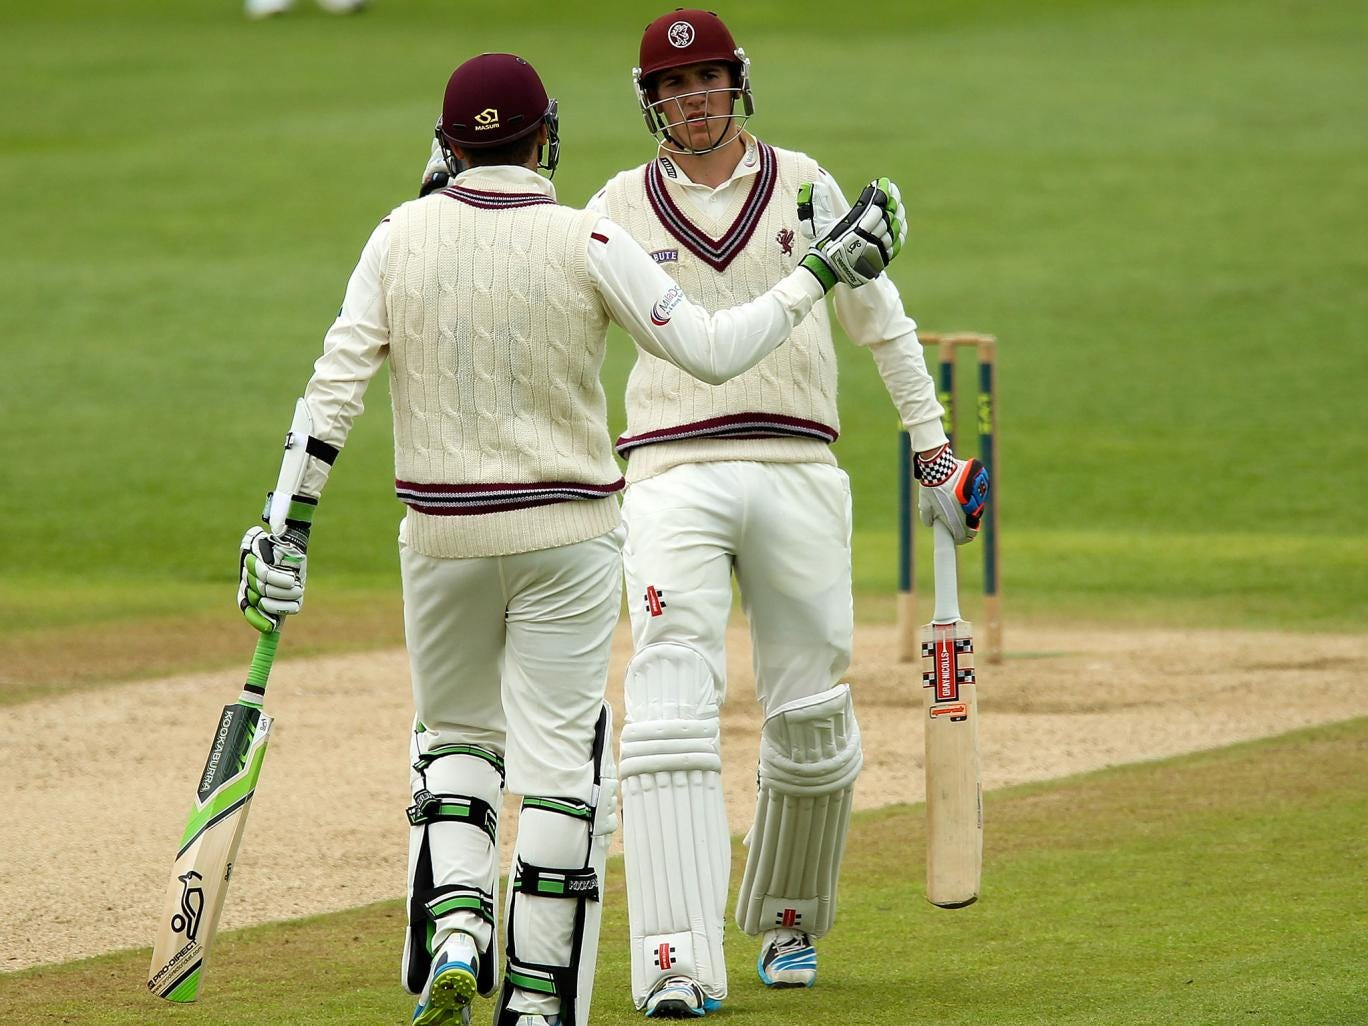 Jamie Overton of Somerset is congratulated by his brother, Craig, after hitting a maiden half-century